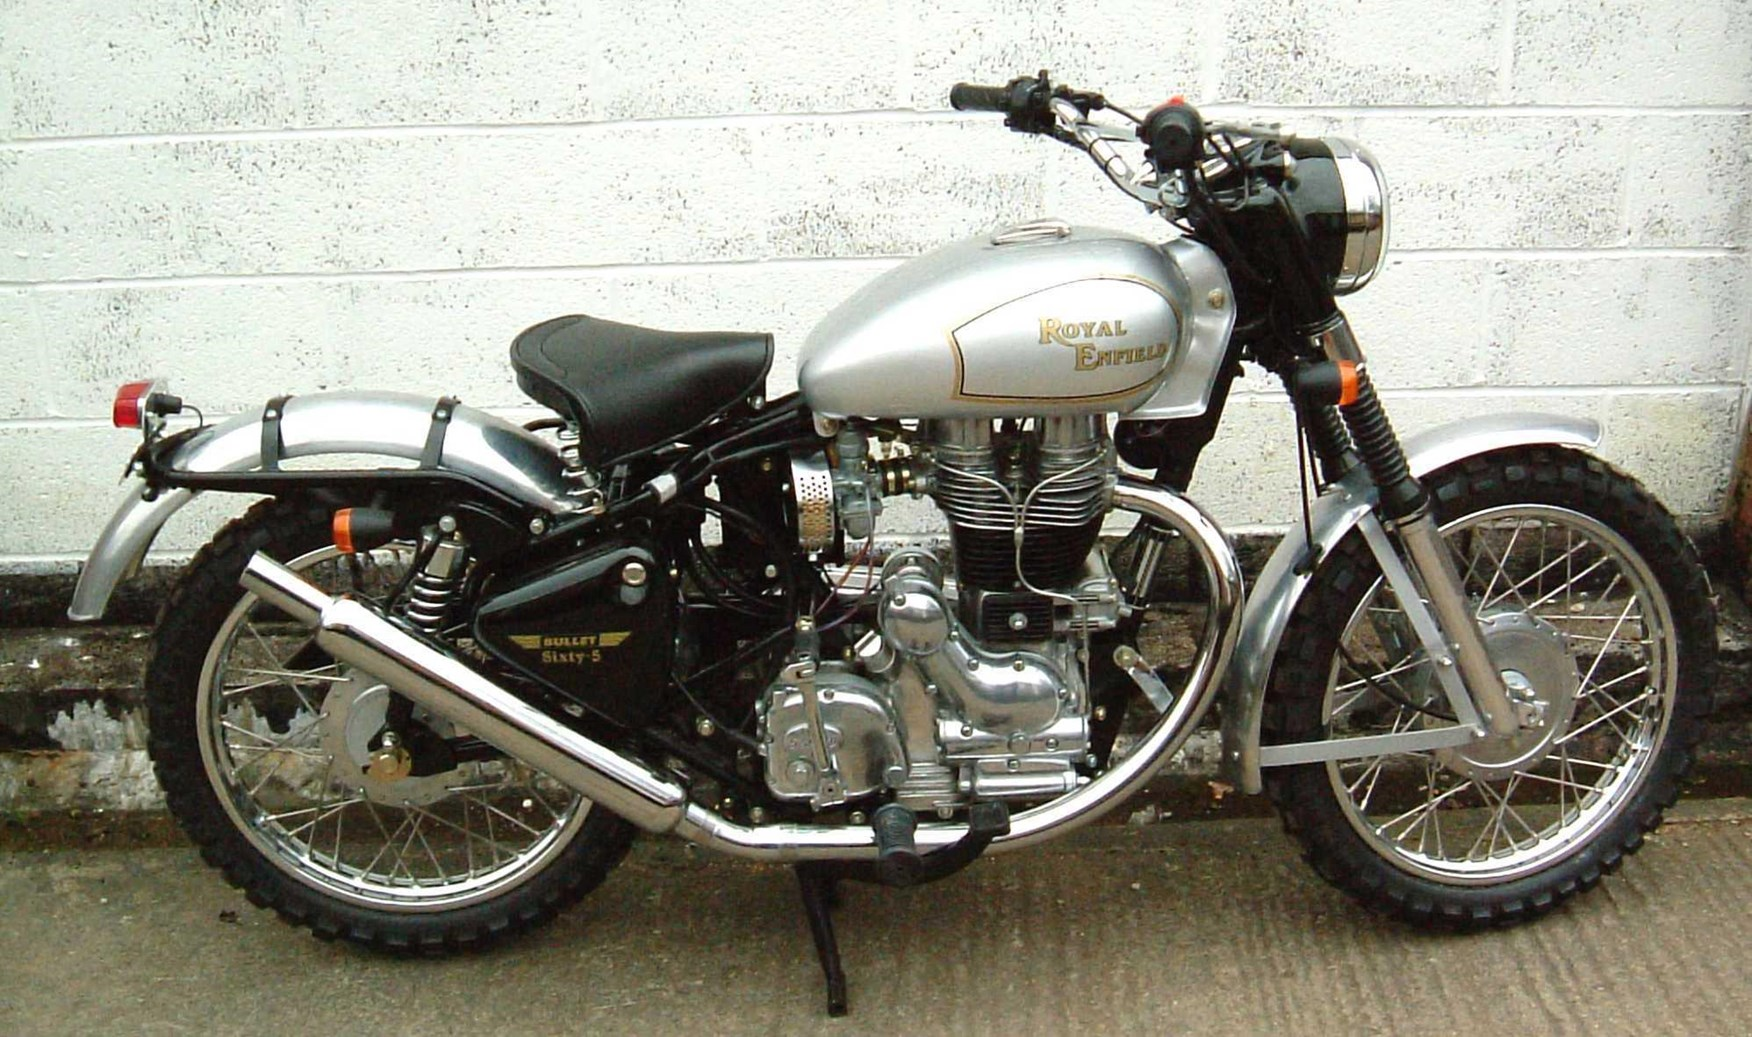 Royal Enfield Bullet 500 Trial Trail 2005 images #170395